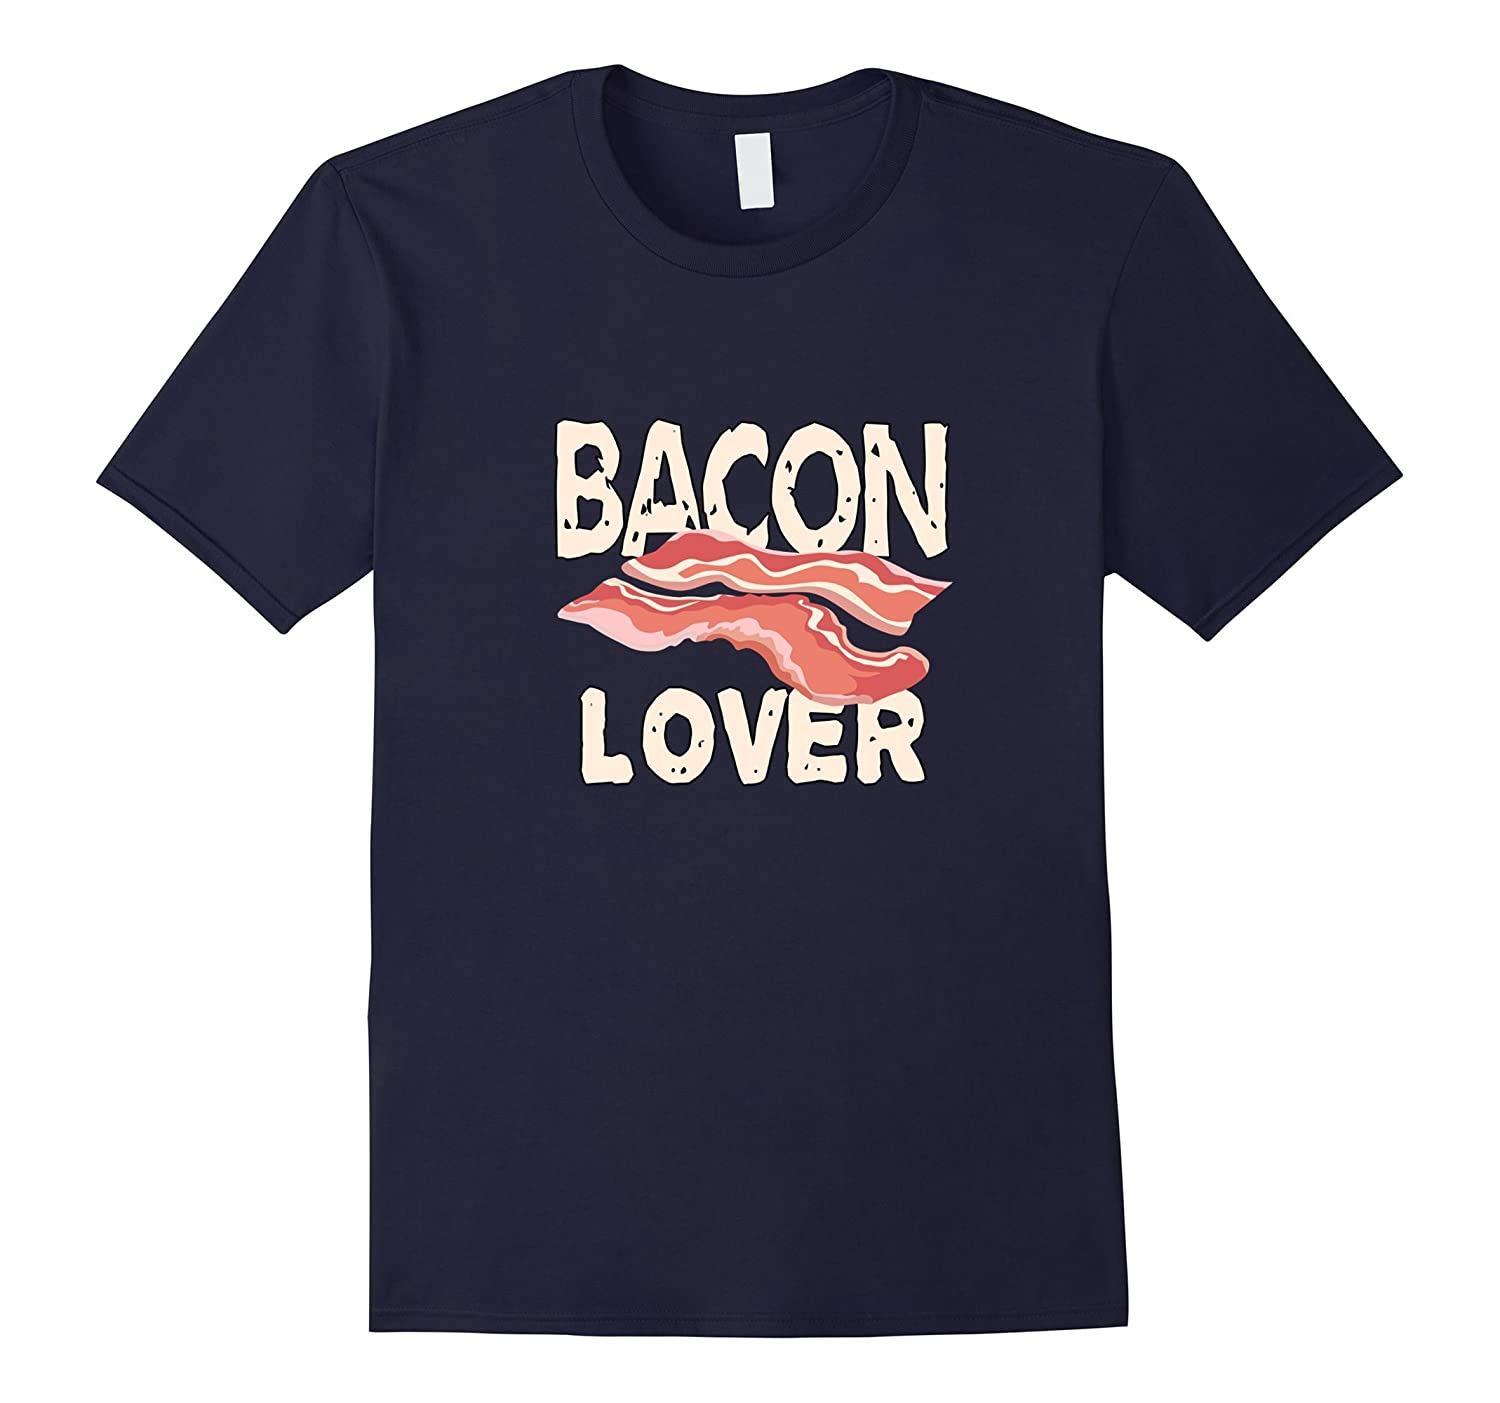 A Bacon Lover Gift T Shirt, Favorite Cured Sliced Pork , Dk-ANZ